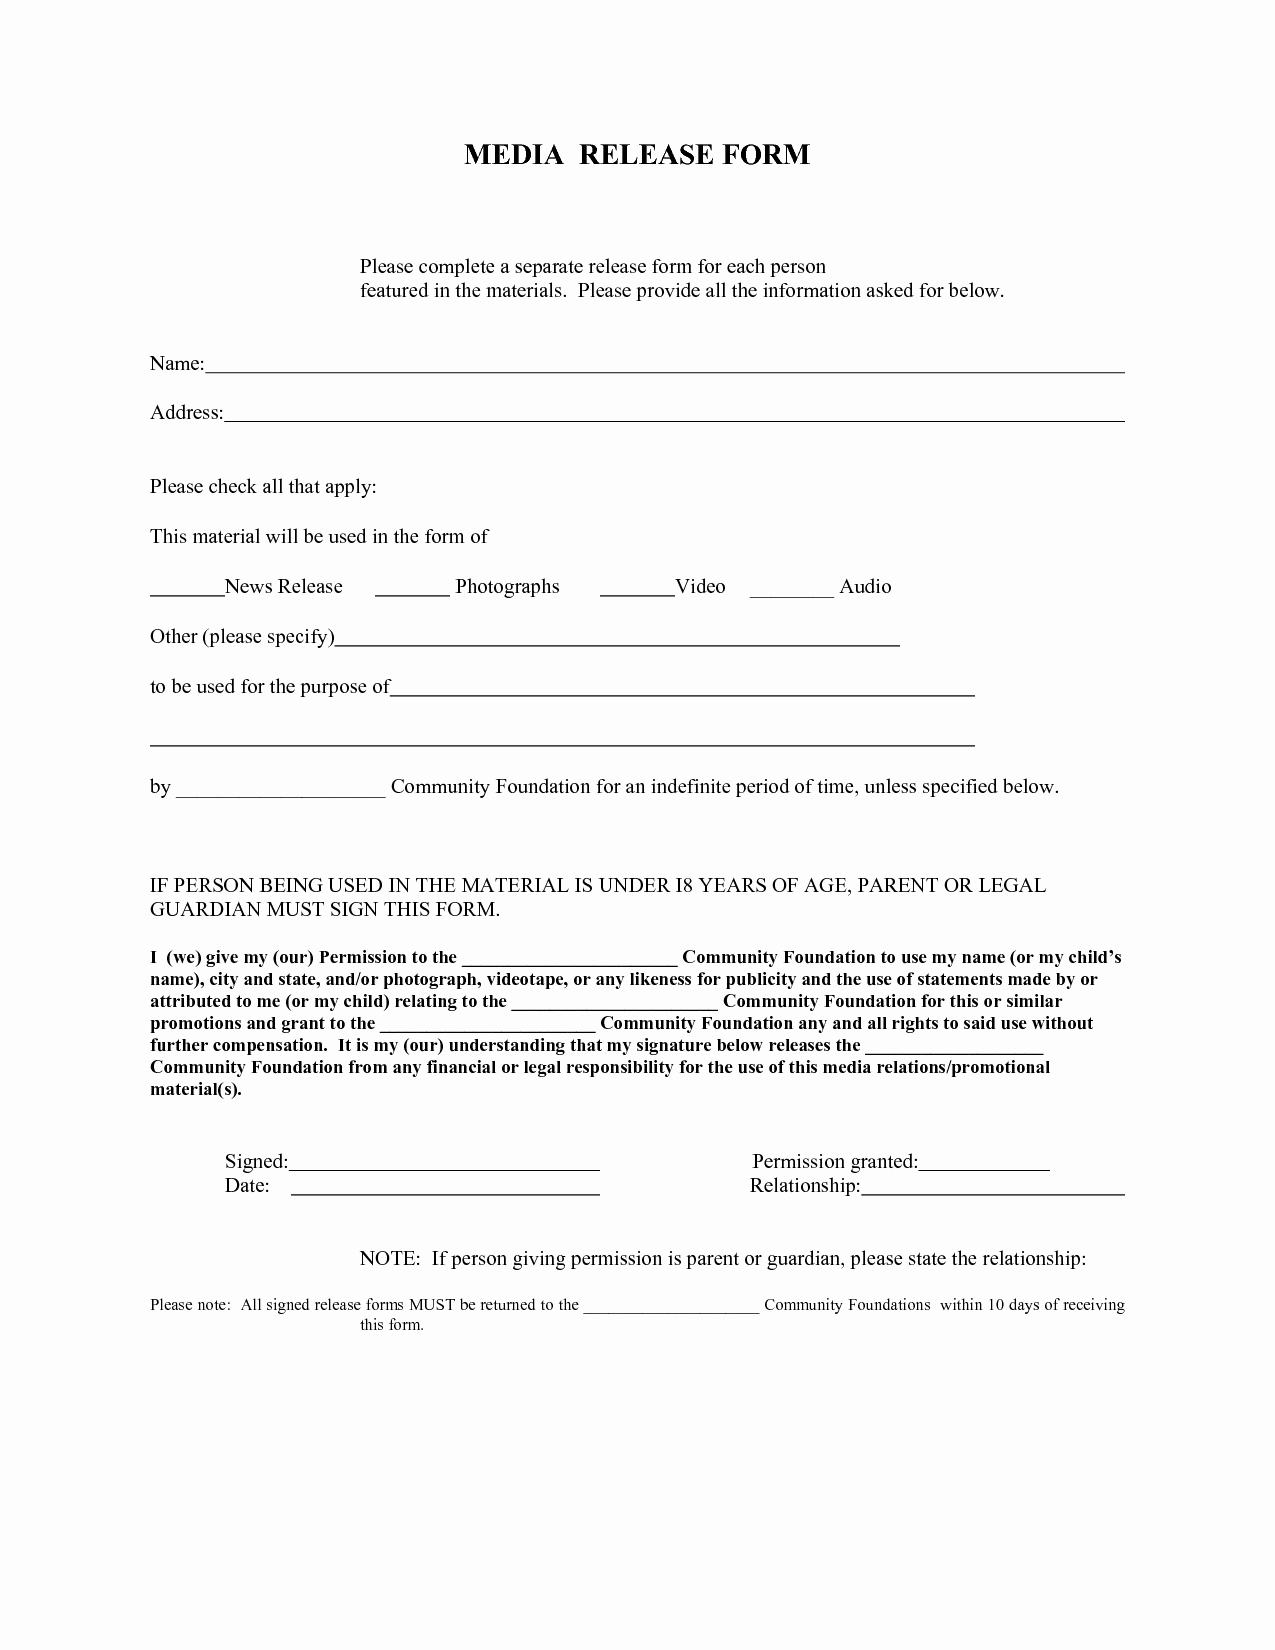 Standard Media Release form Template Beautiful Press Release form – Emmamcintyrephotography